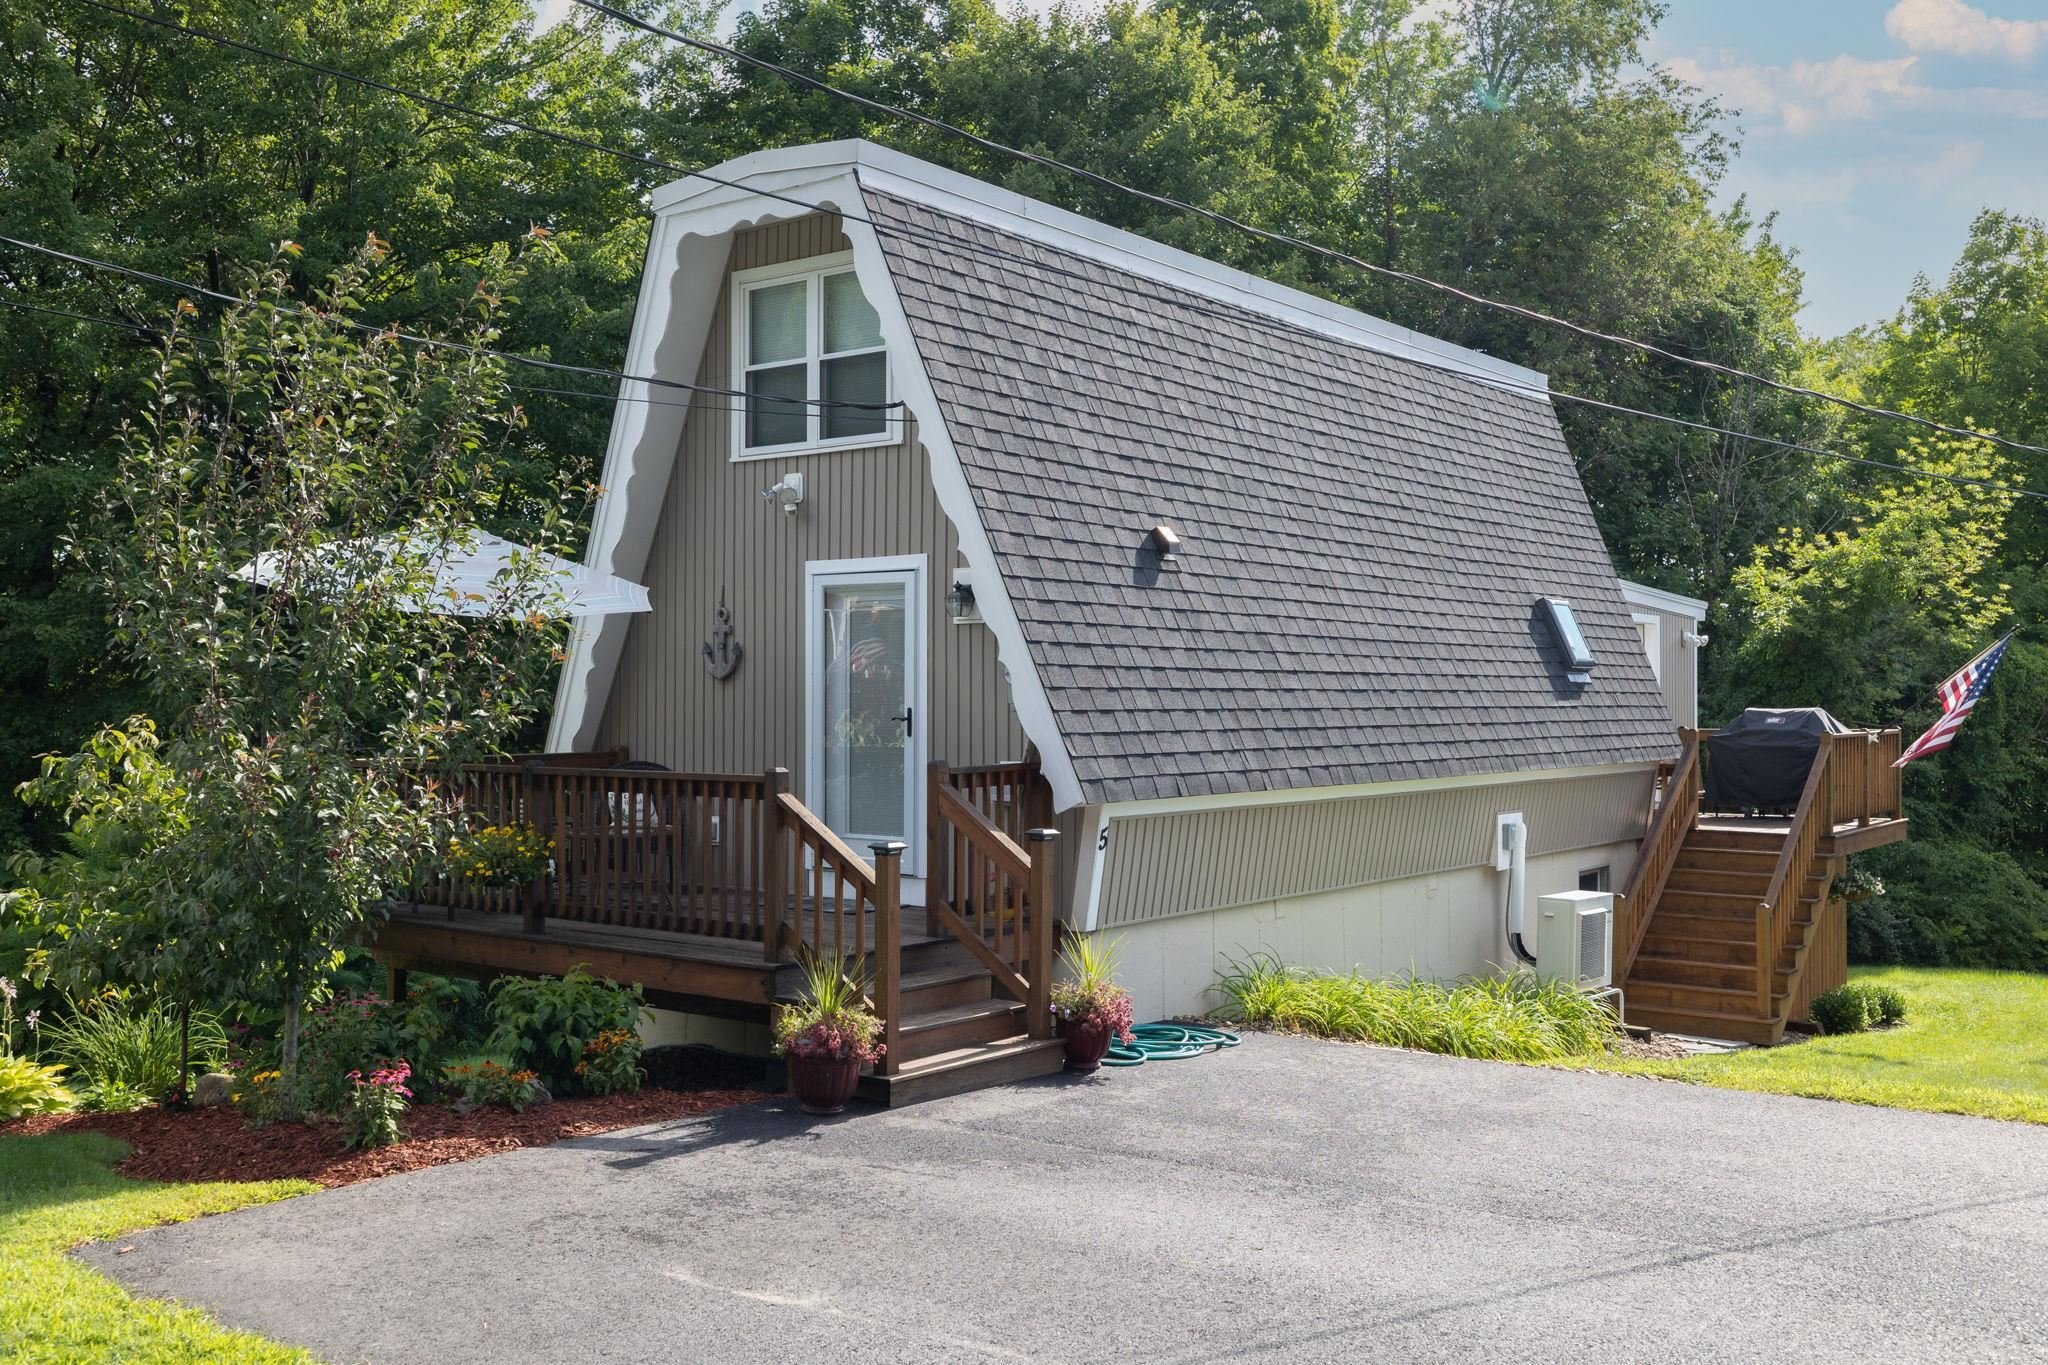 1 East Bluff Highlands Road 5, Meredith, NH 03253